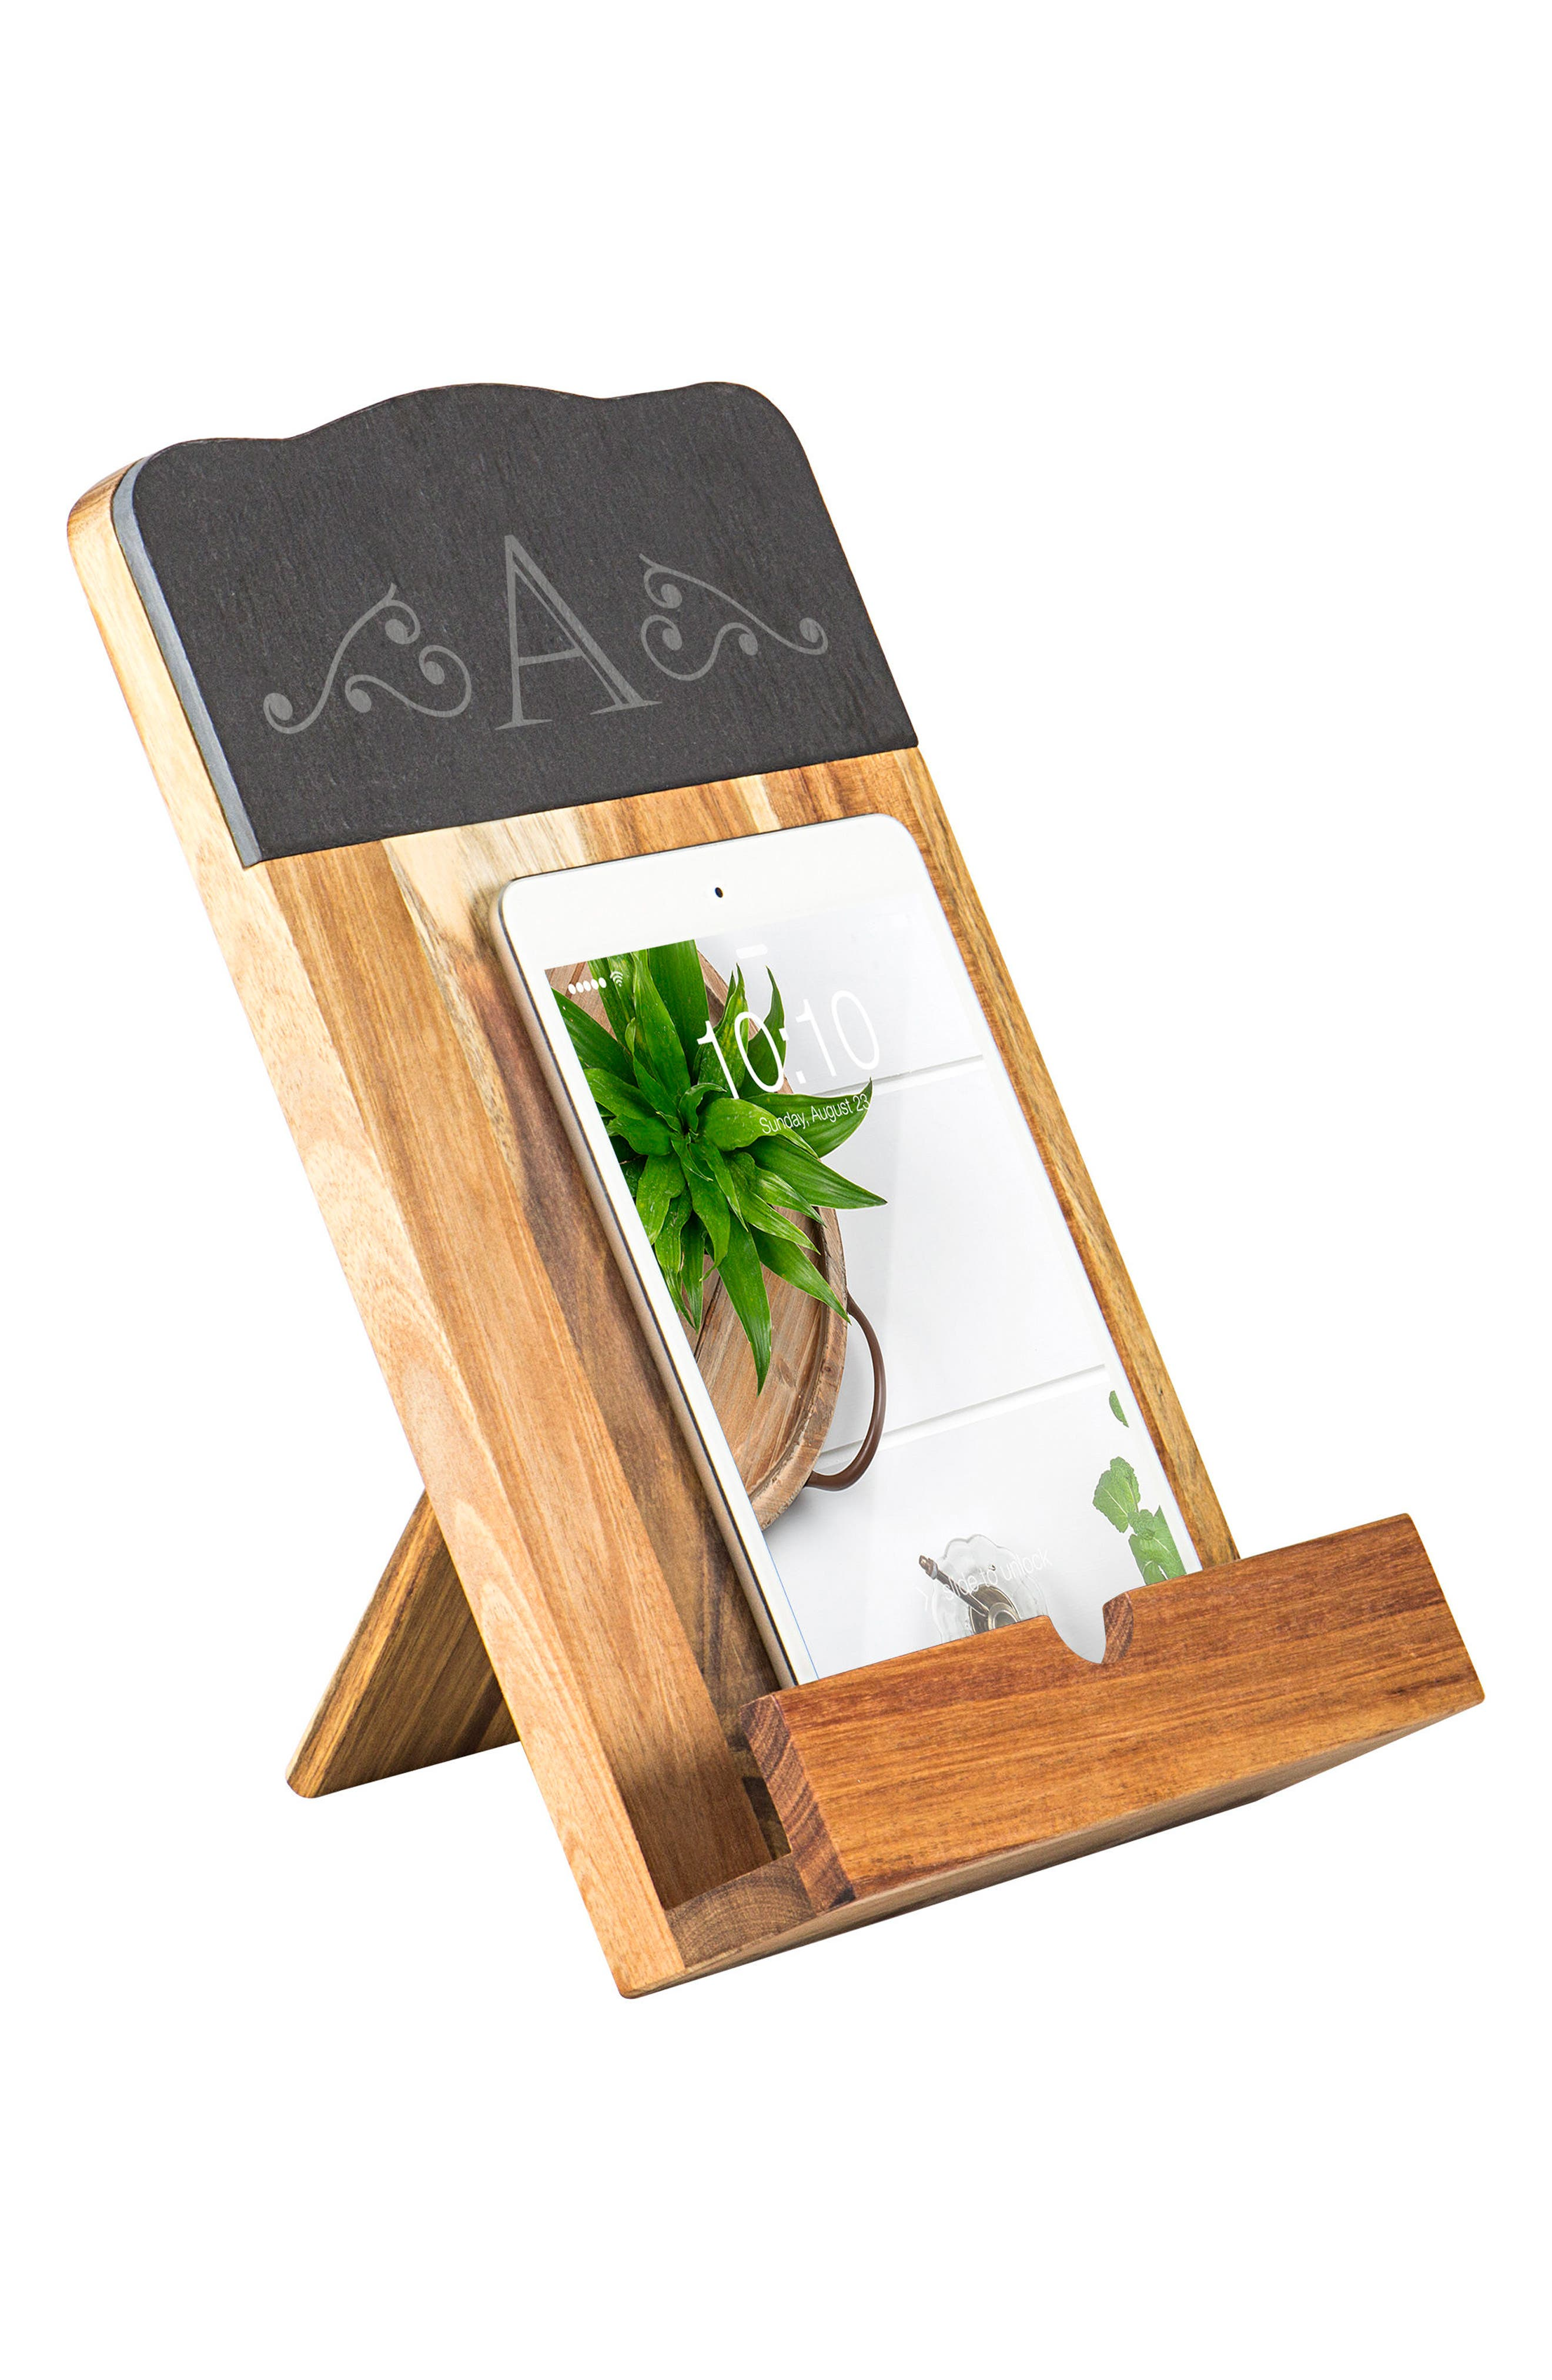 Cathy's Concepts Monogram Tablet Holder